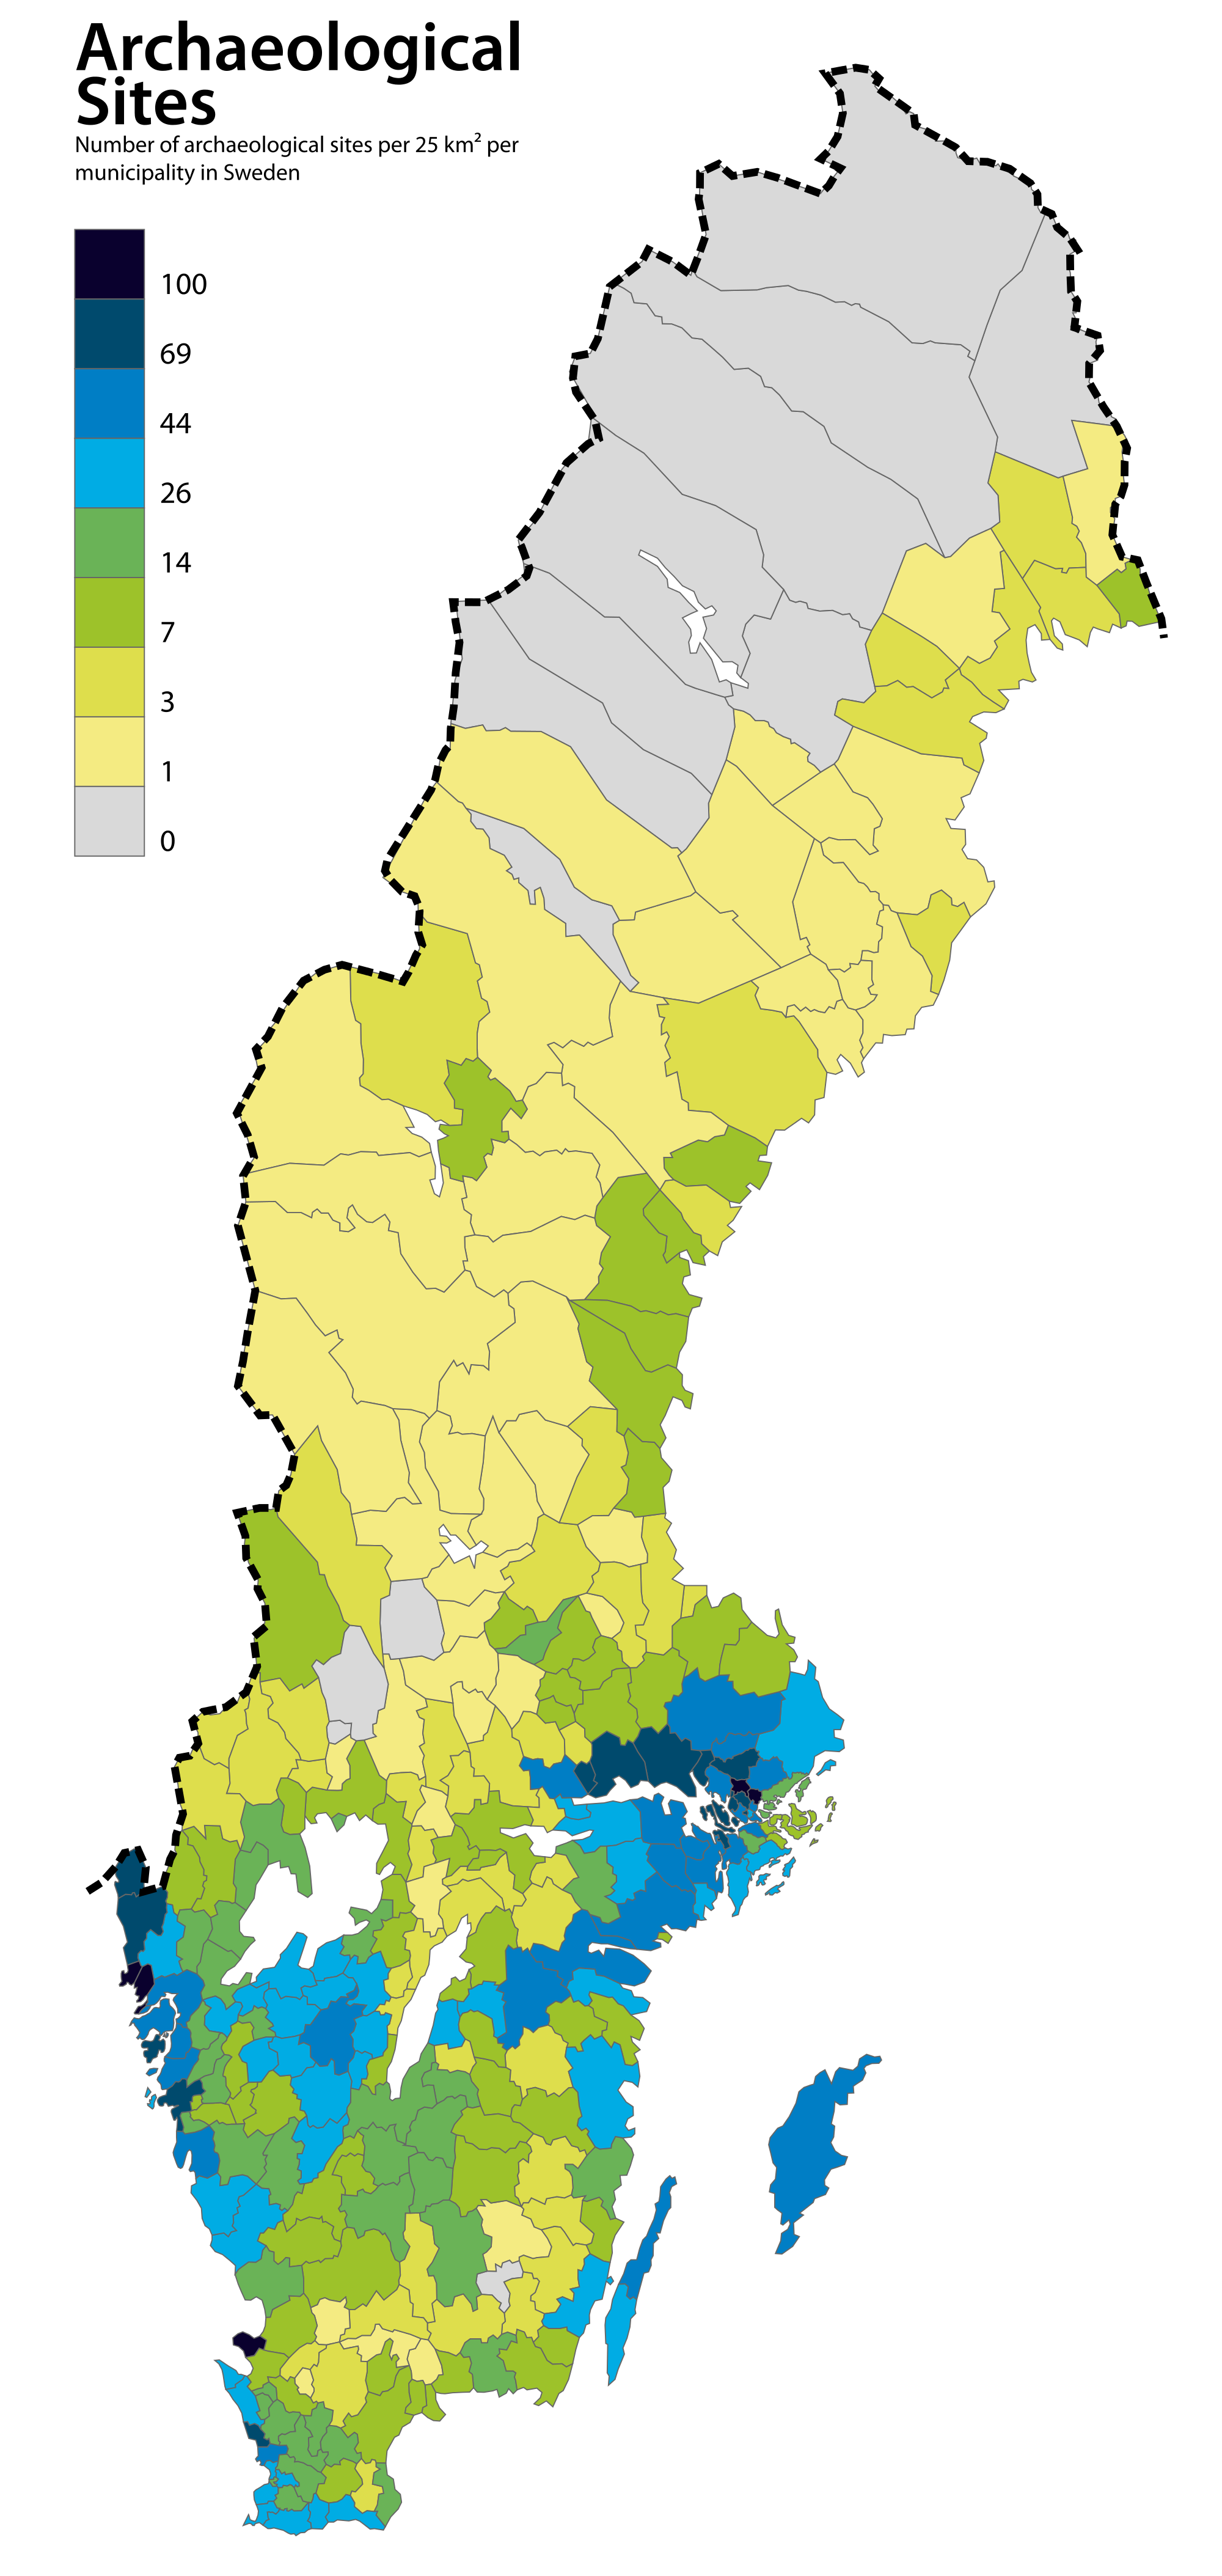 Archaeological Sites In Sweden MAPS Pinterest Archaeological - Sweden map population density